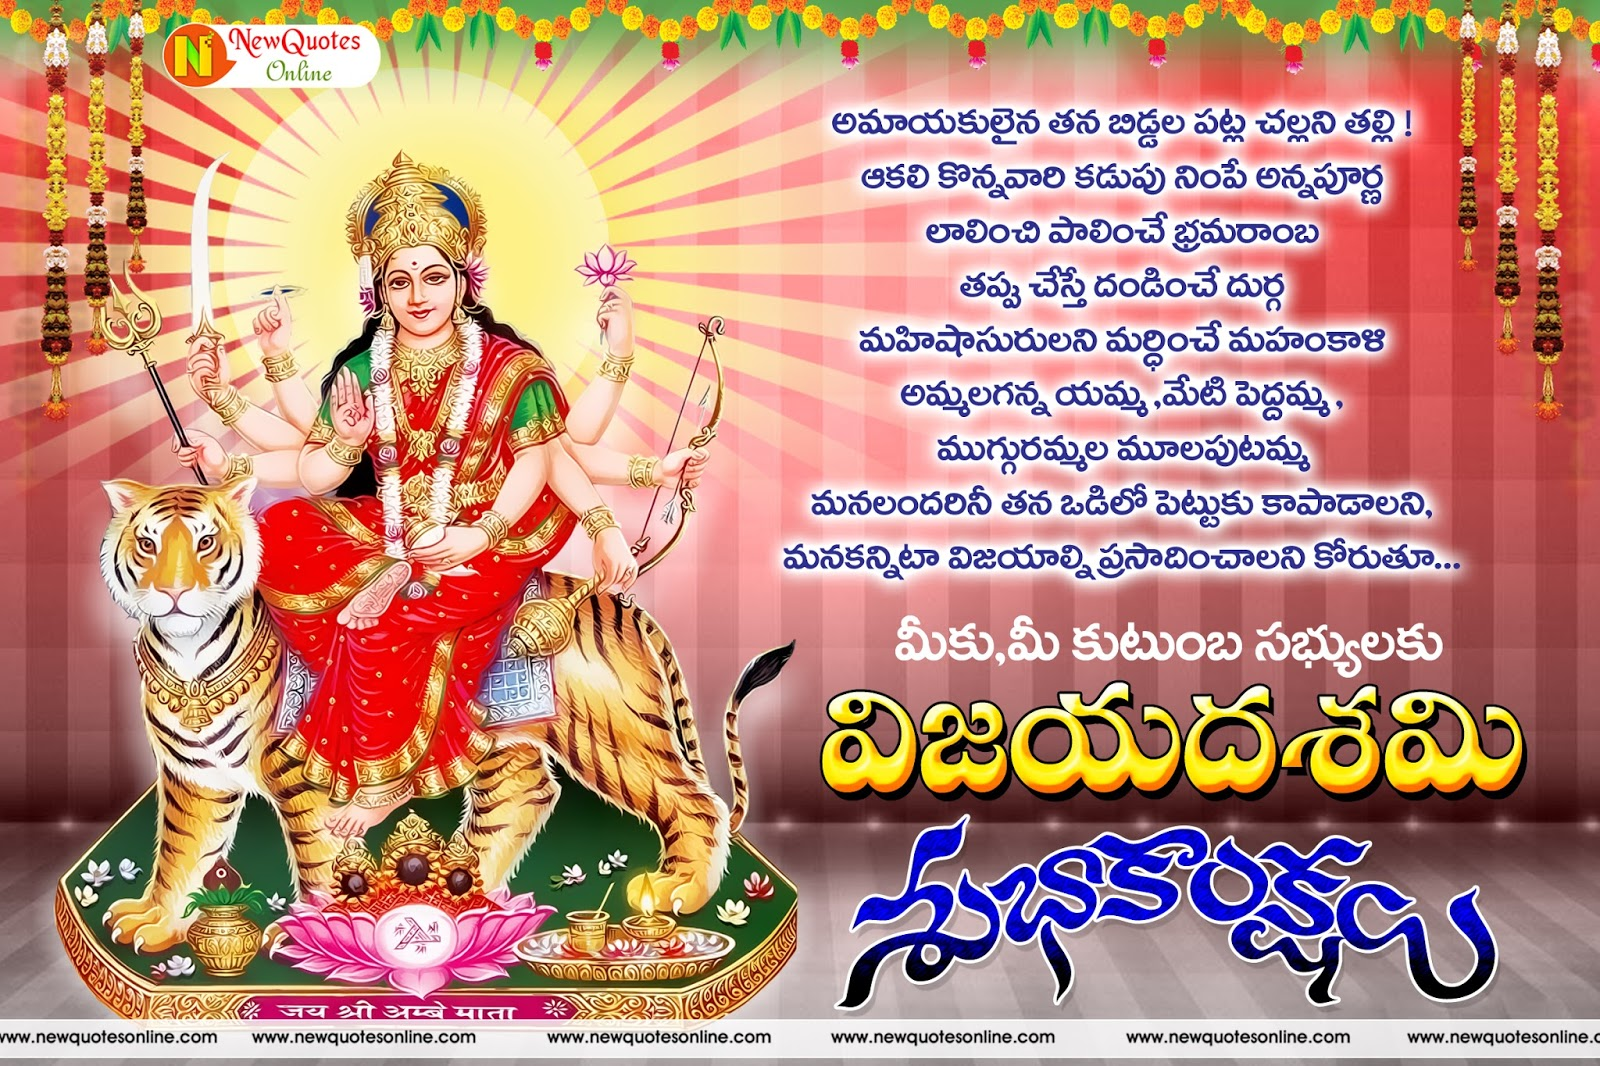 Happy dussehra telugu quotes with images new quotes happy dasara telugu quotes durga mata quotes in m4hsunfo